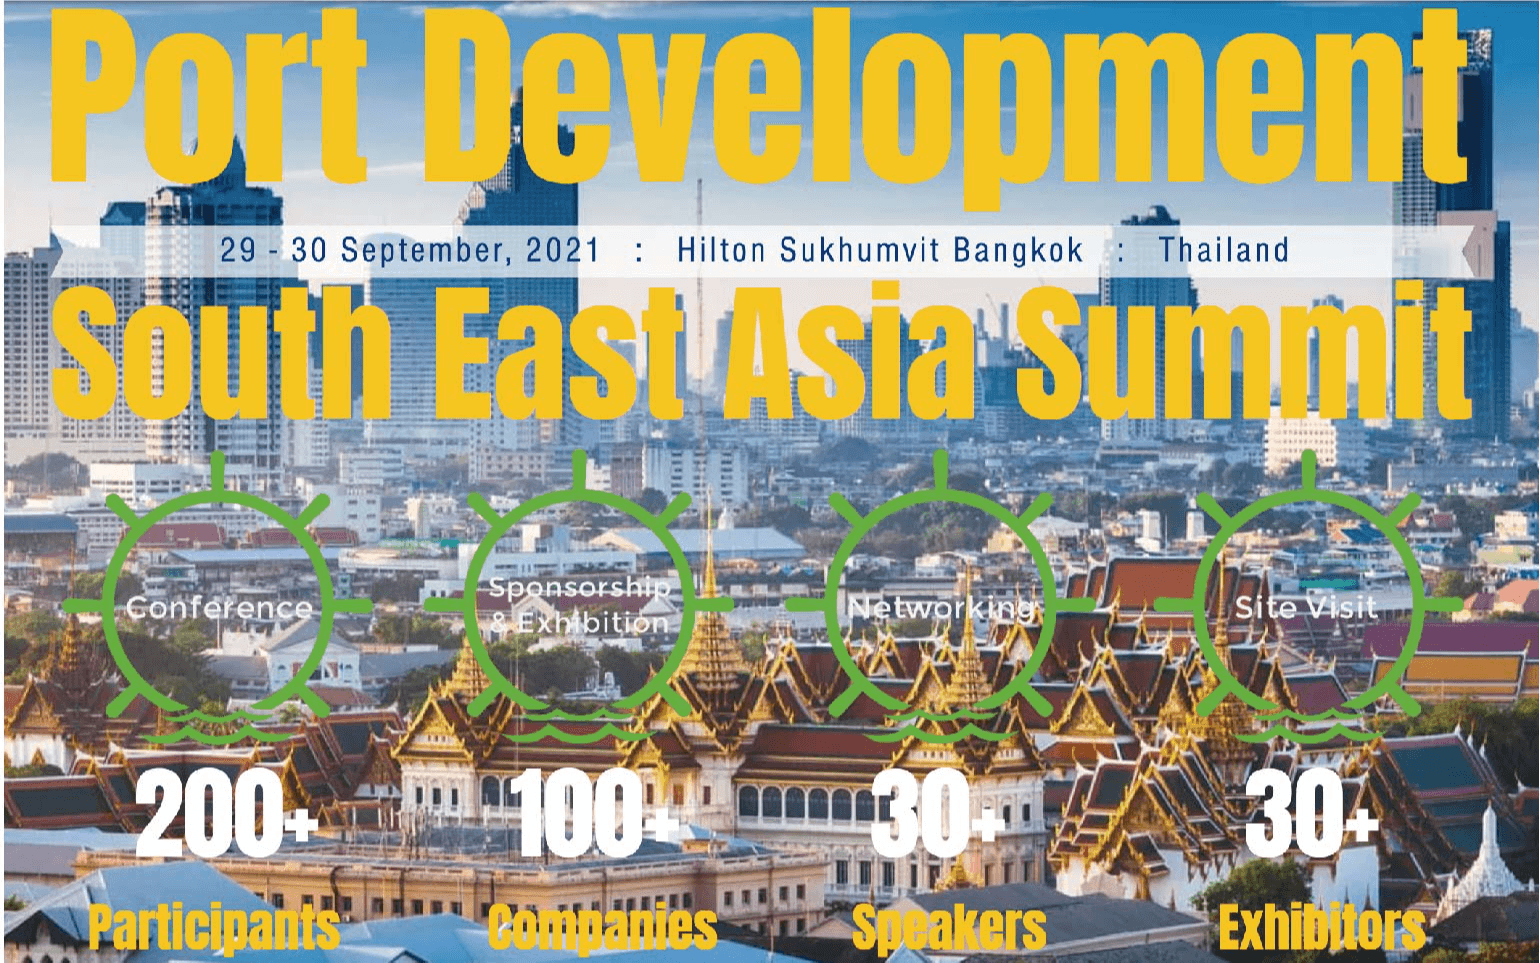 2nd Port Development South East Asia Summit 2021